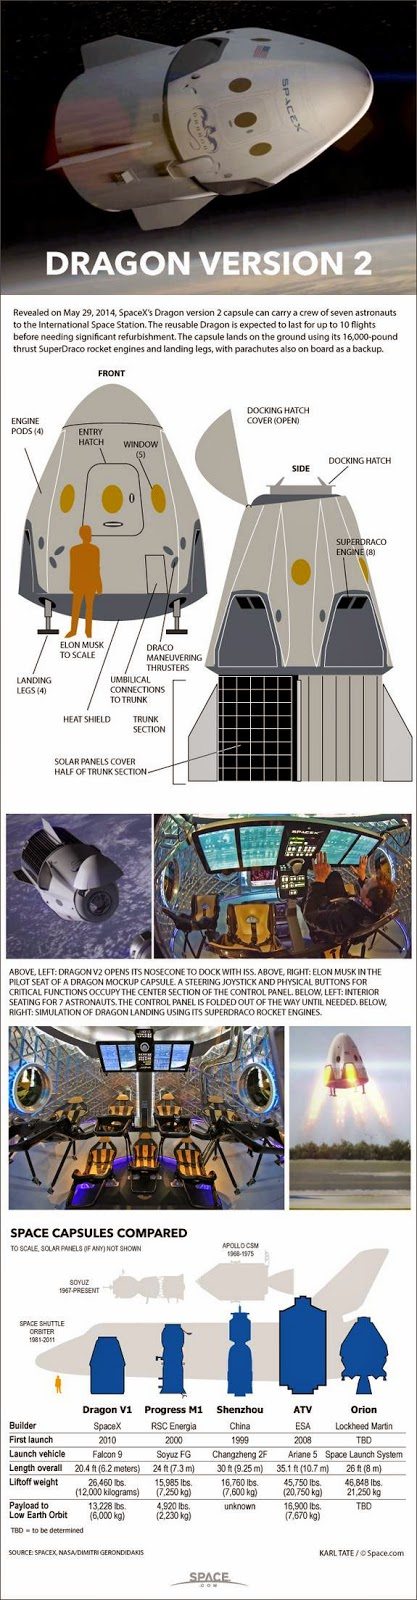 détails about space probes sent by usa